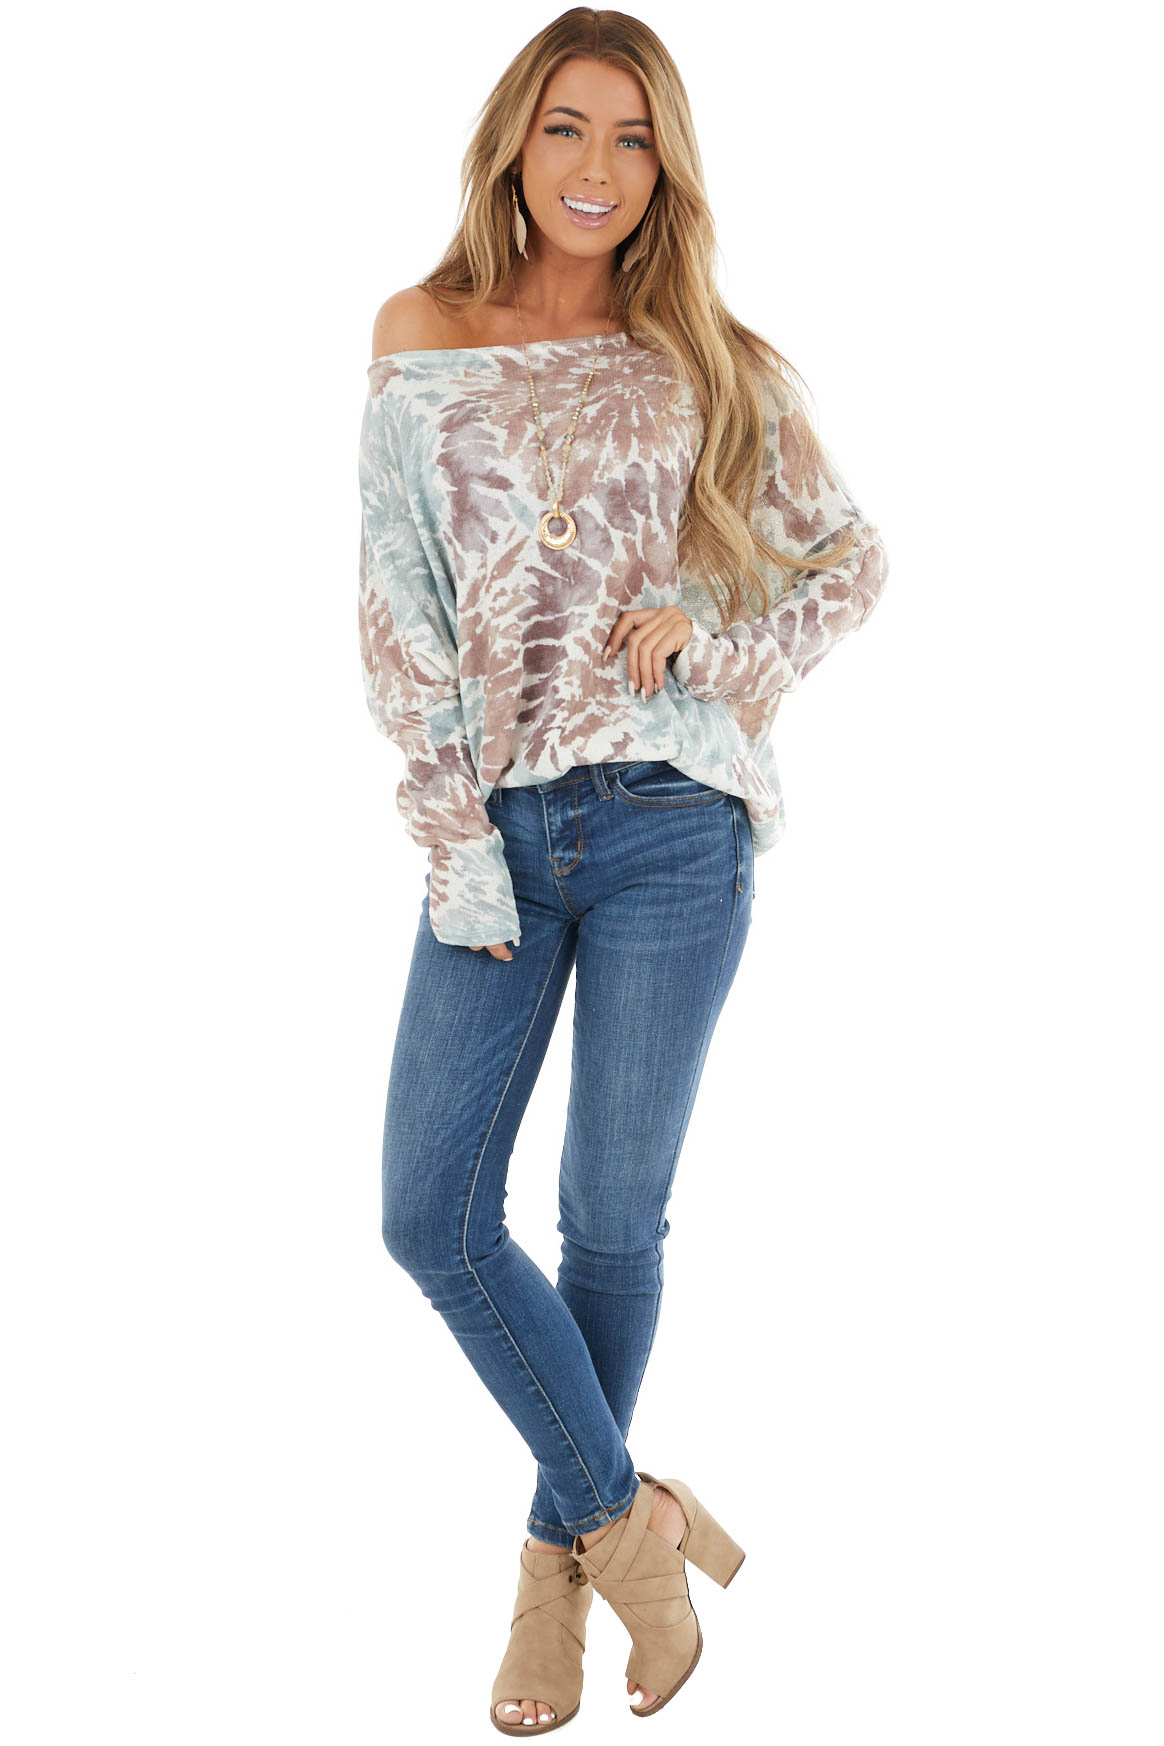 Mocha and Sage Tie Dye Print Top with Long Dolman Sleeves